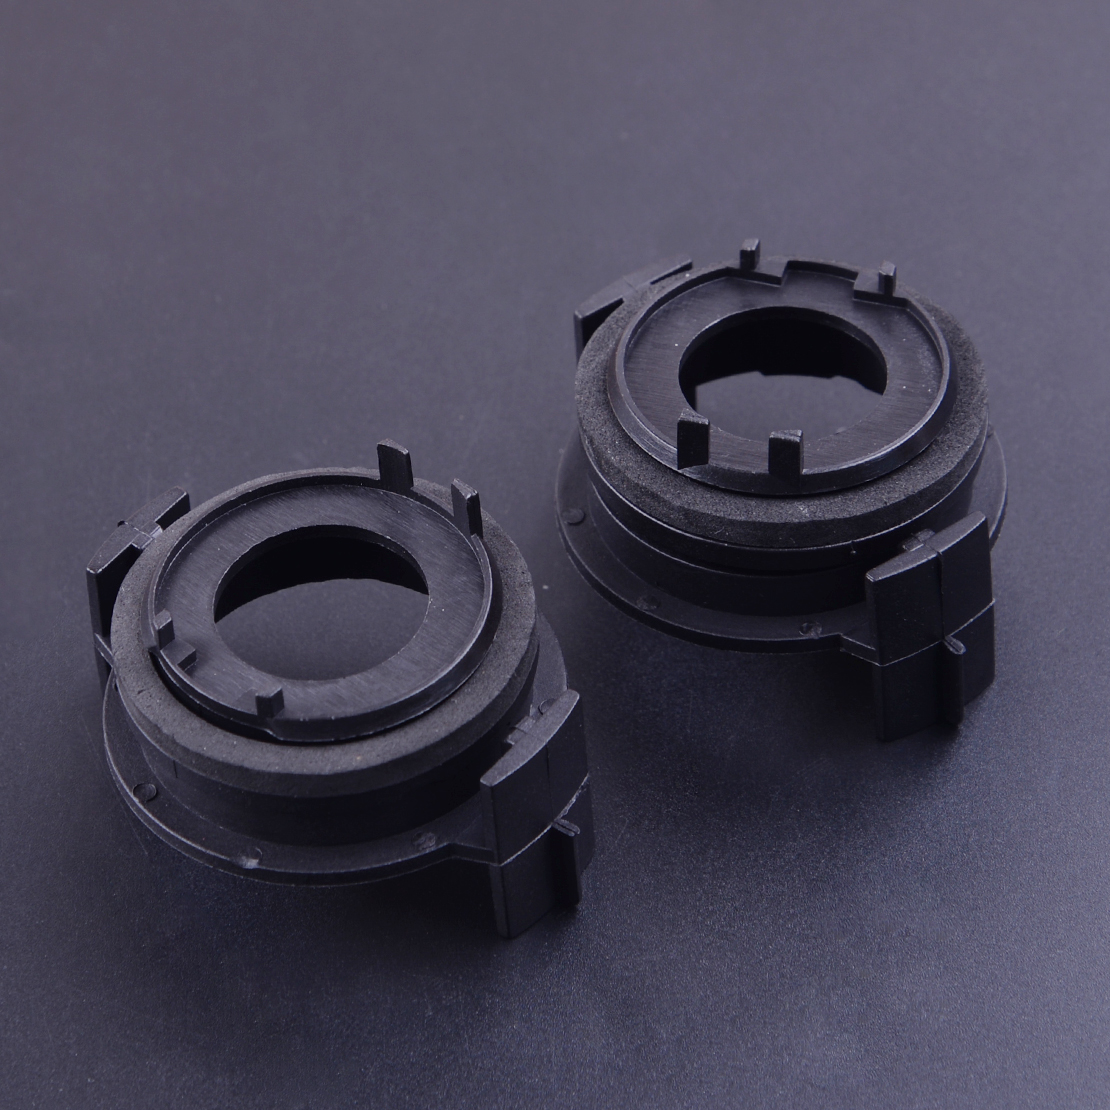 CITALL 2pcs Black Plastic <font><b>LED</b></font> Headlight Bulbs Lamp Light Clip <font><b>Adapter</b></font> Socket Base Holder Retainer Fit For <font><b>BMW</b></font> <font><b>E46</b></font> E90 3 Series image